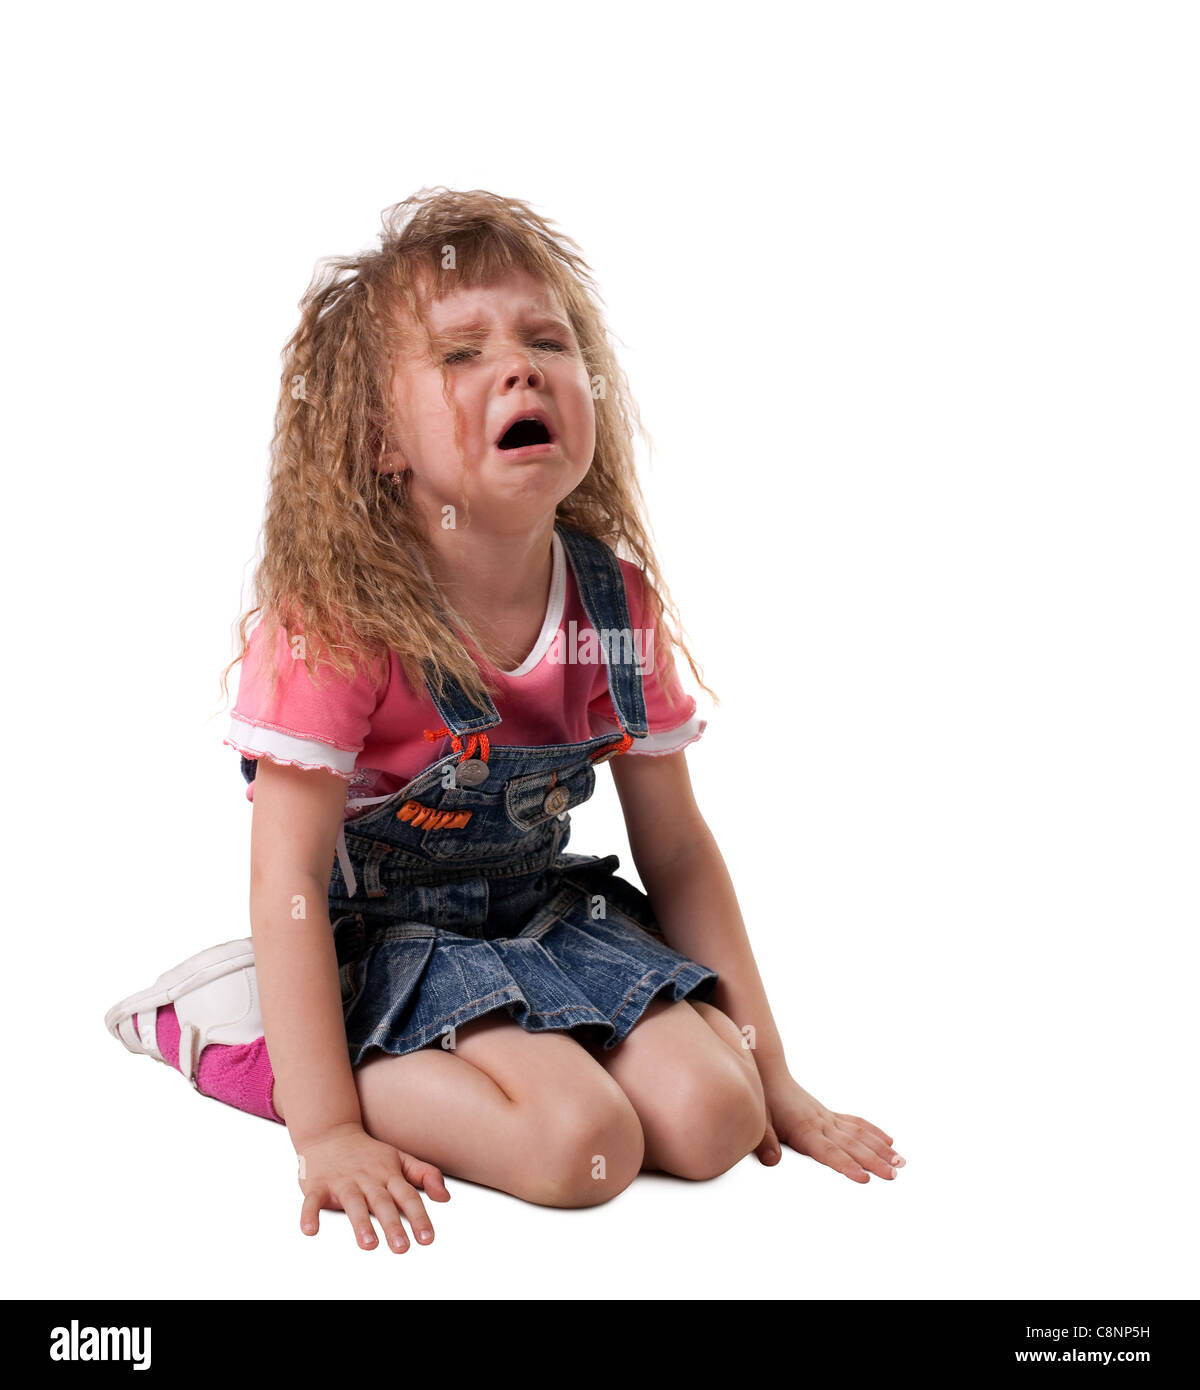 crying kid sit on white, jeans cloth - isolated - Stock Image